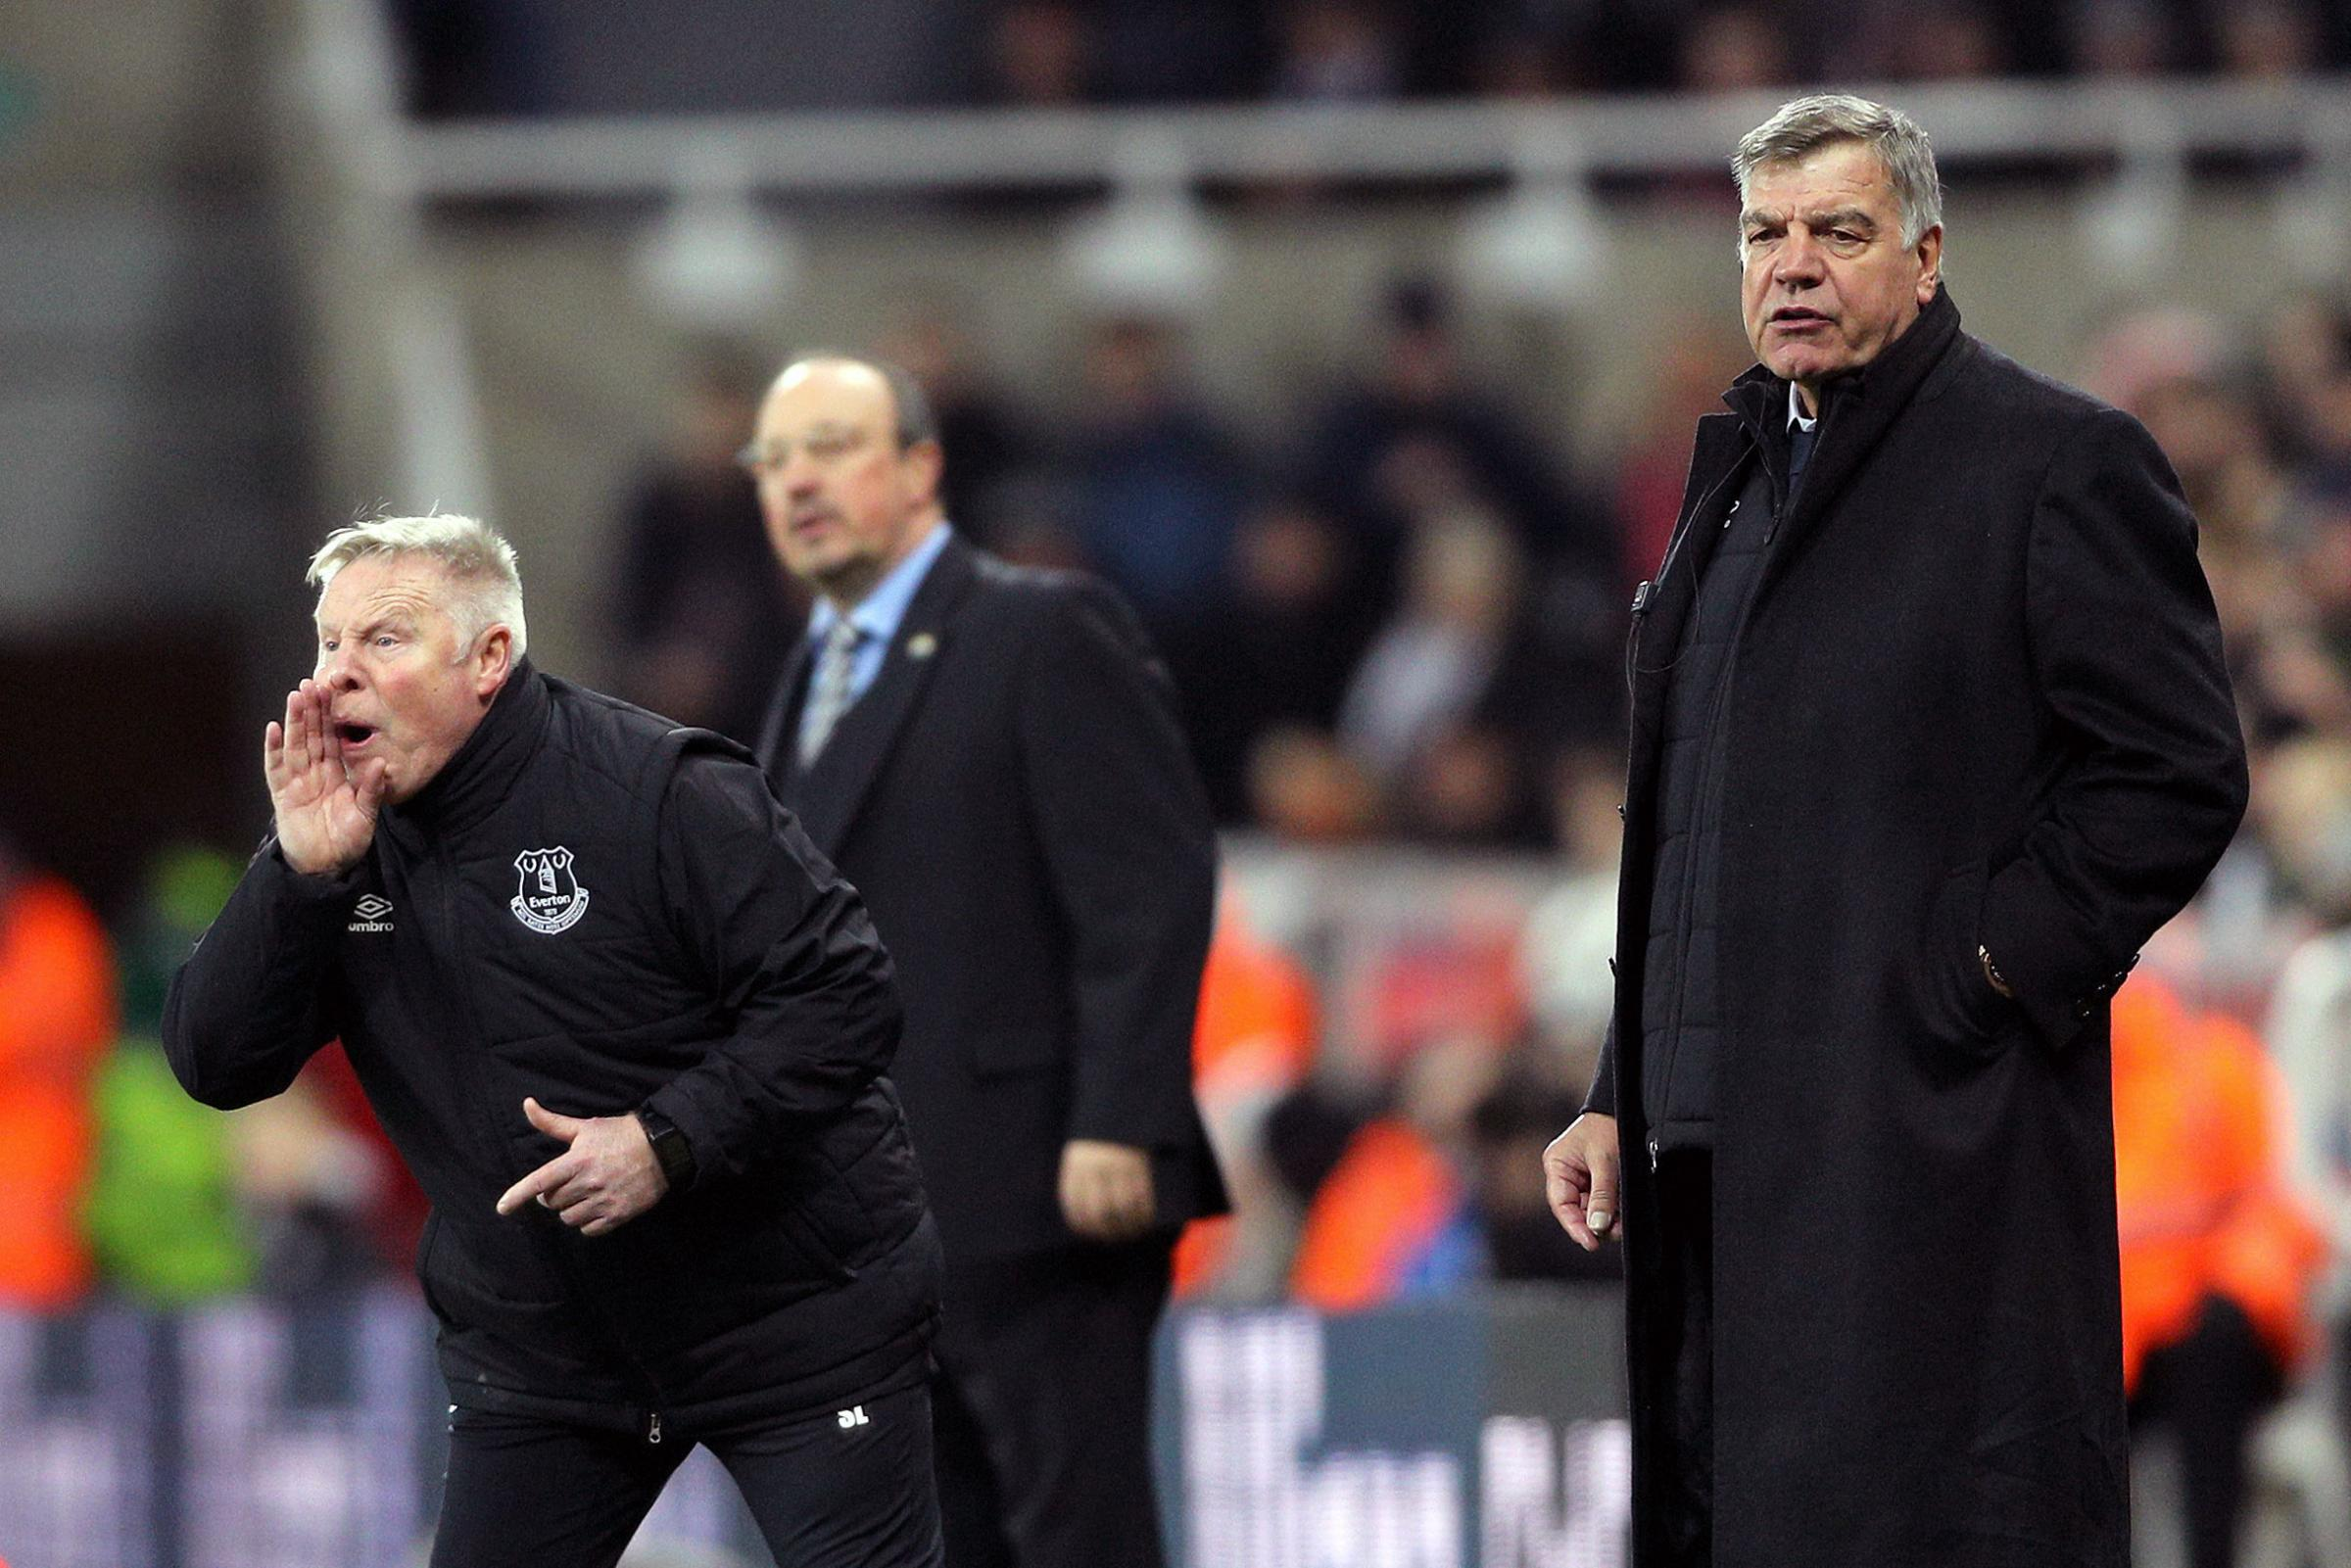 Everton manager Sam Allardyce (right) during the Premier League match at St James' Park, Newcastle. Picture: PA